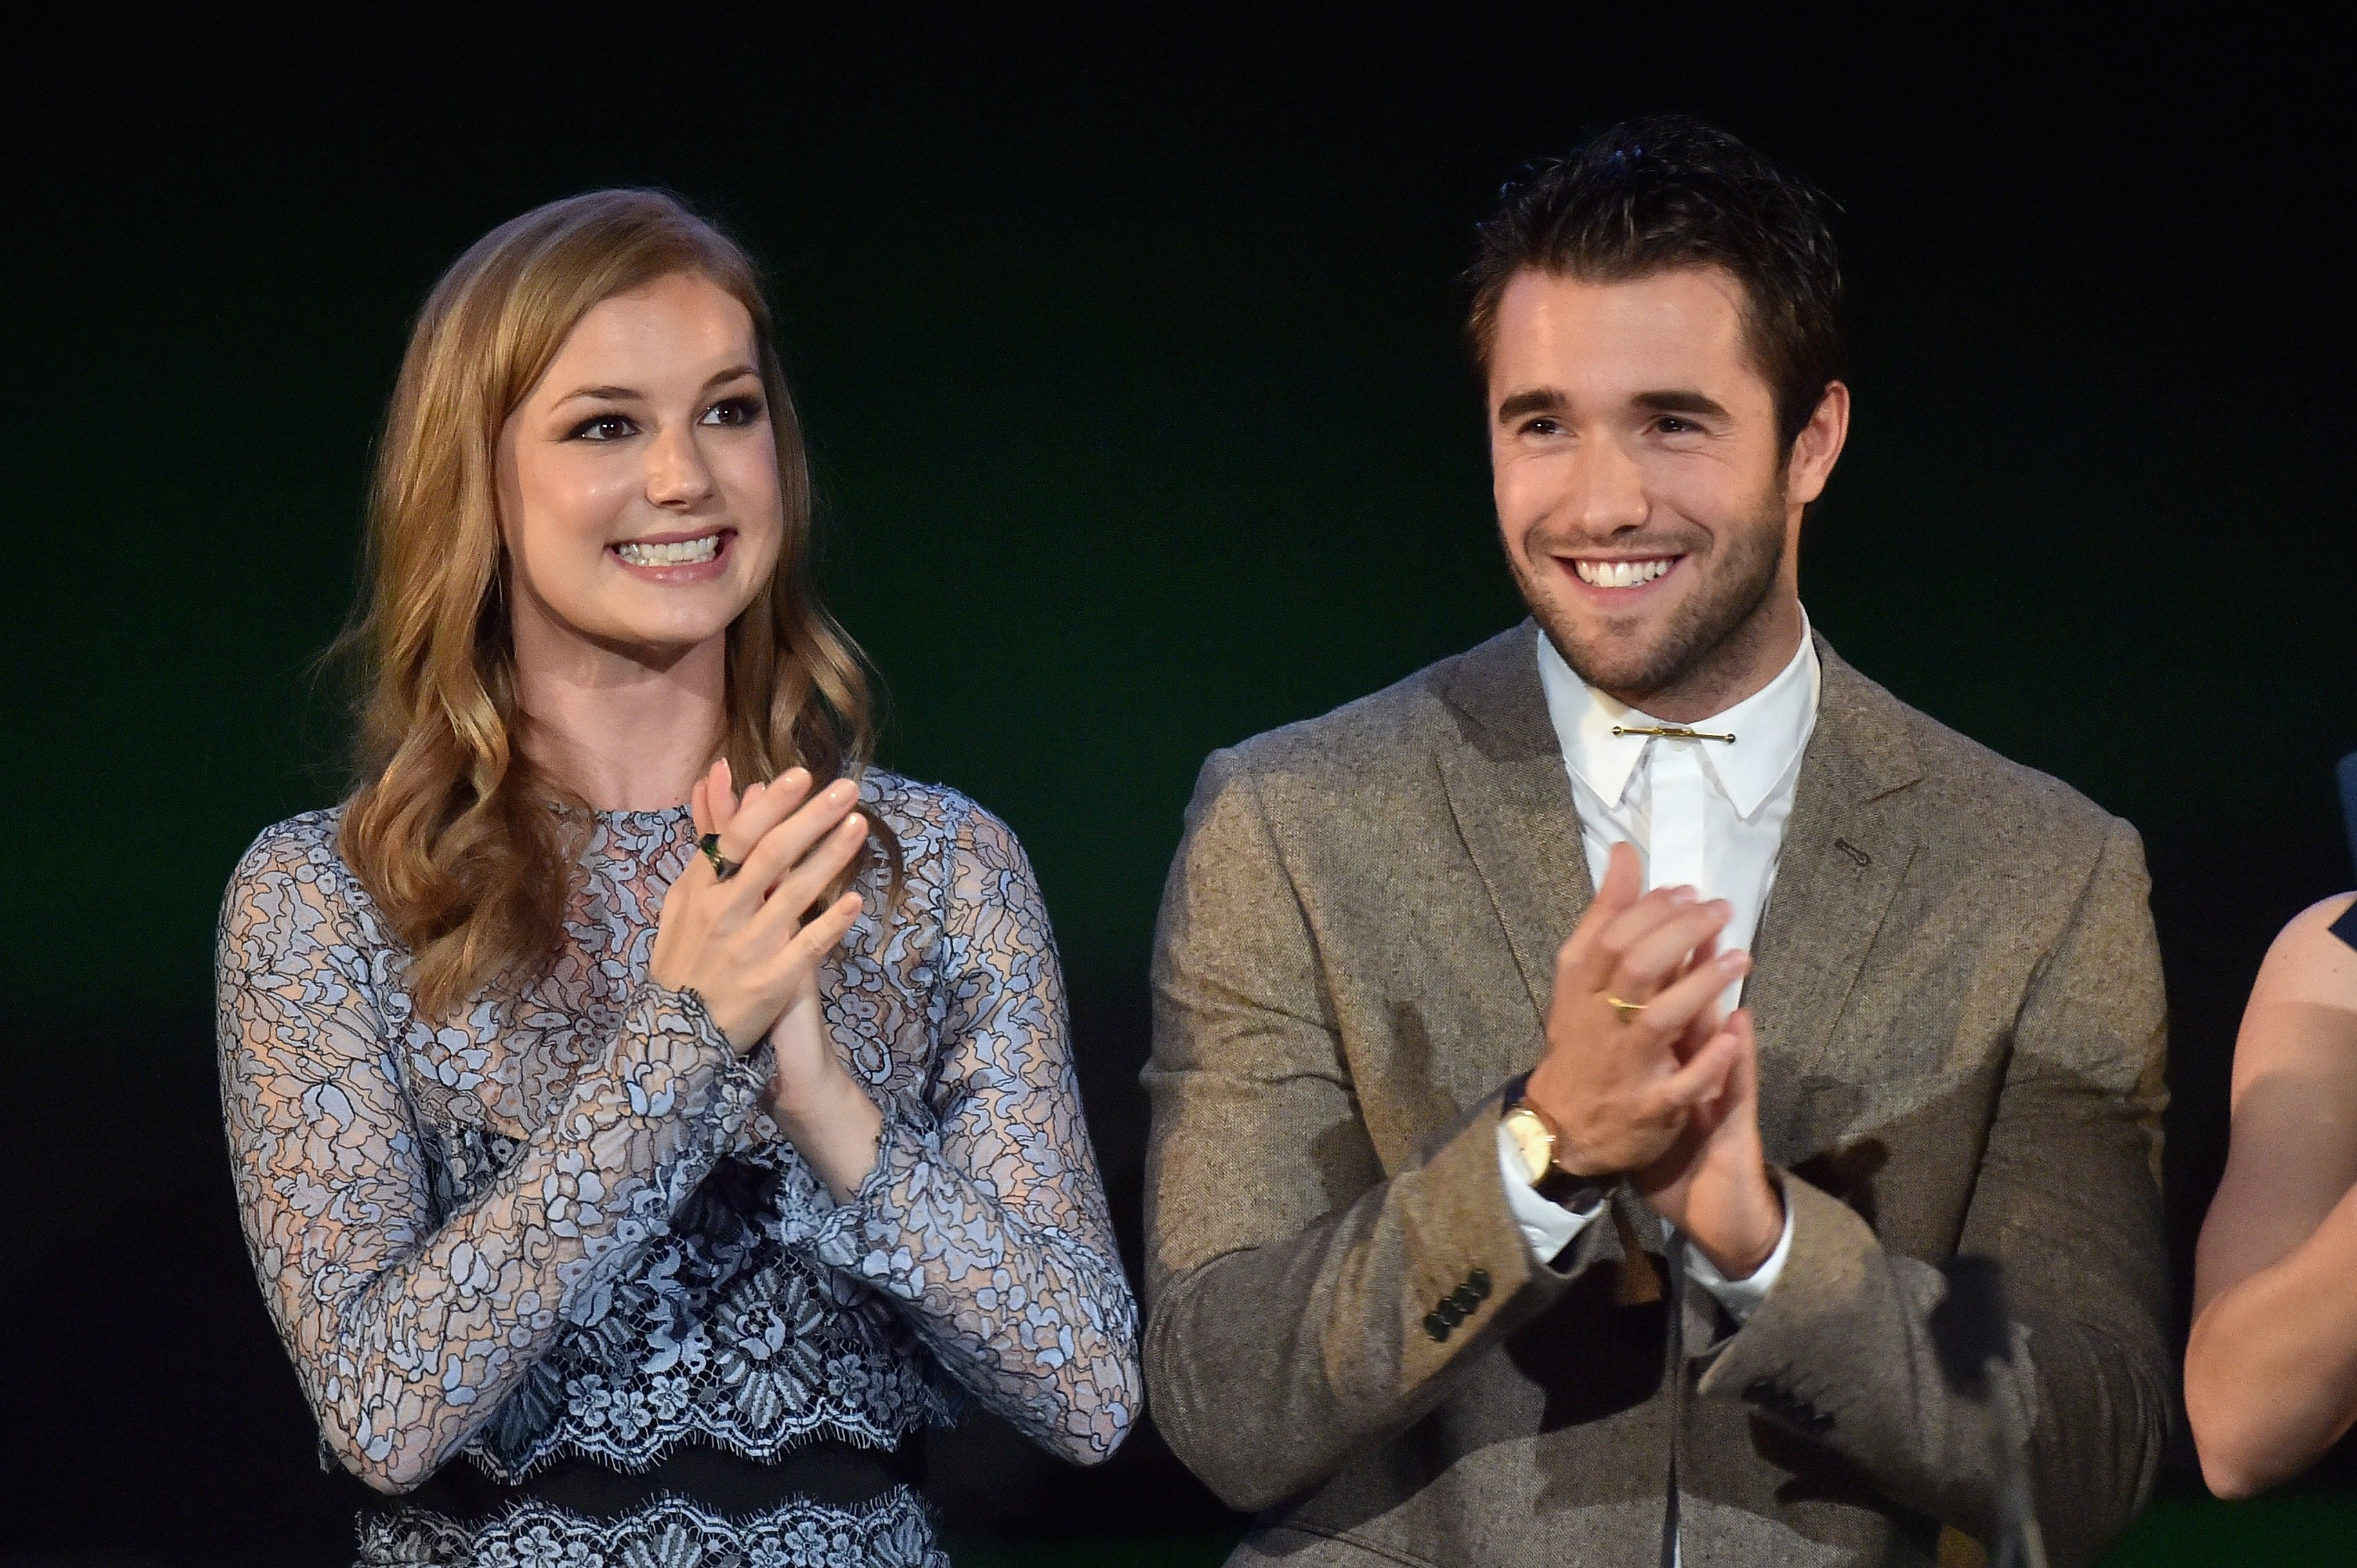 Emily VanCamp and her husband Joshua Bowman speak at the 24th Annual Environmental Media Awards at Warner Bros. Studio on October 18, 2014 in Burbank, California   Photo: Getty Images